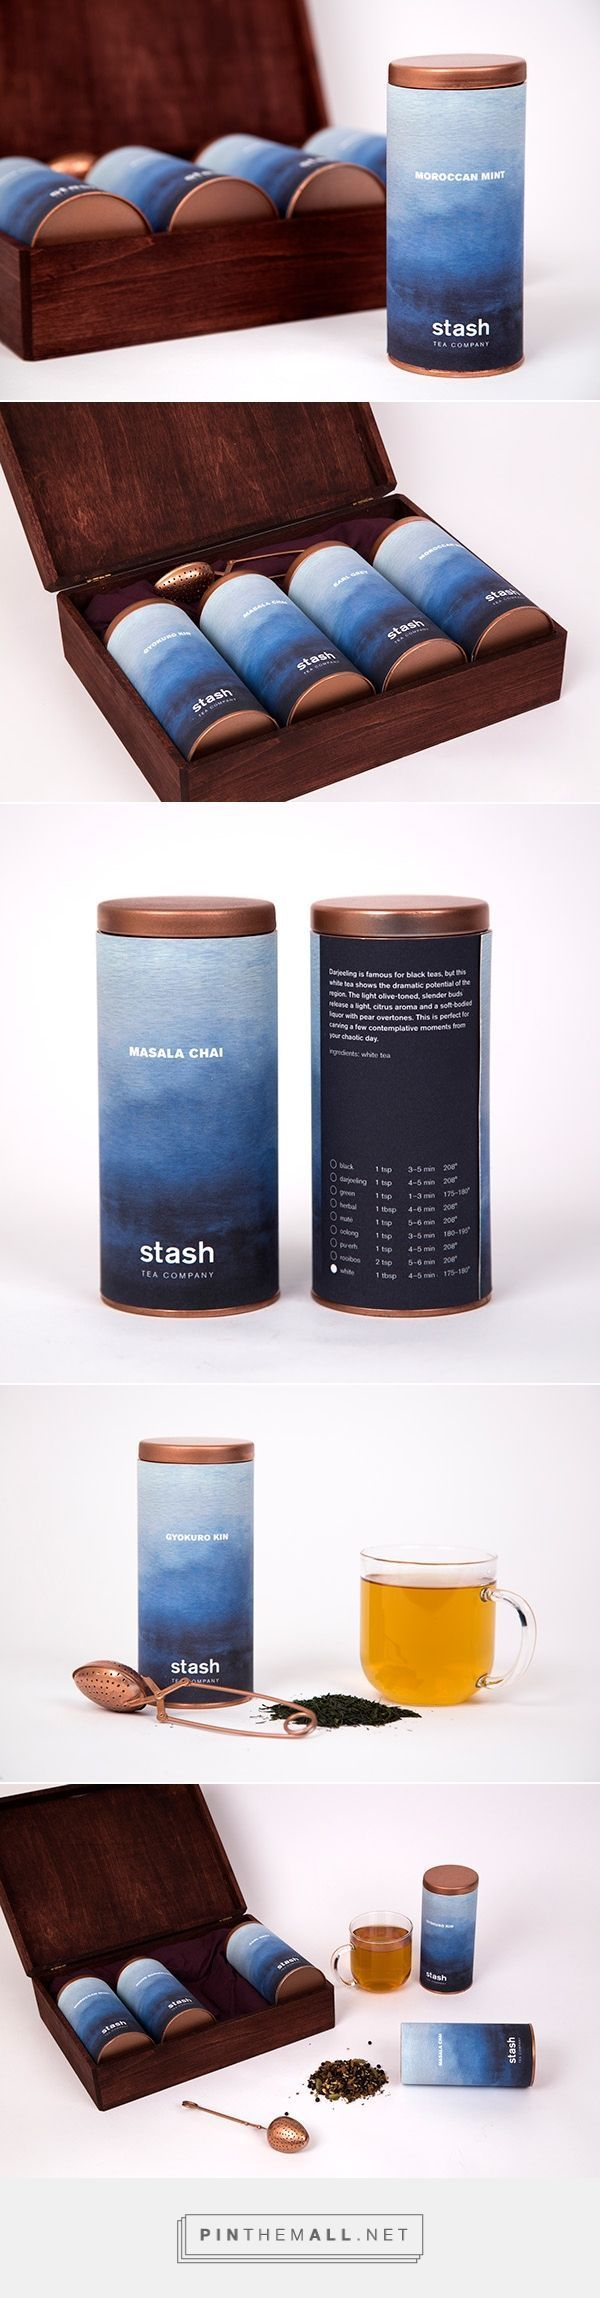 Stash Tea Company